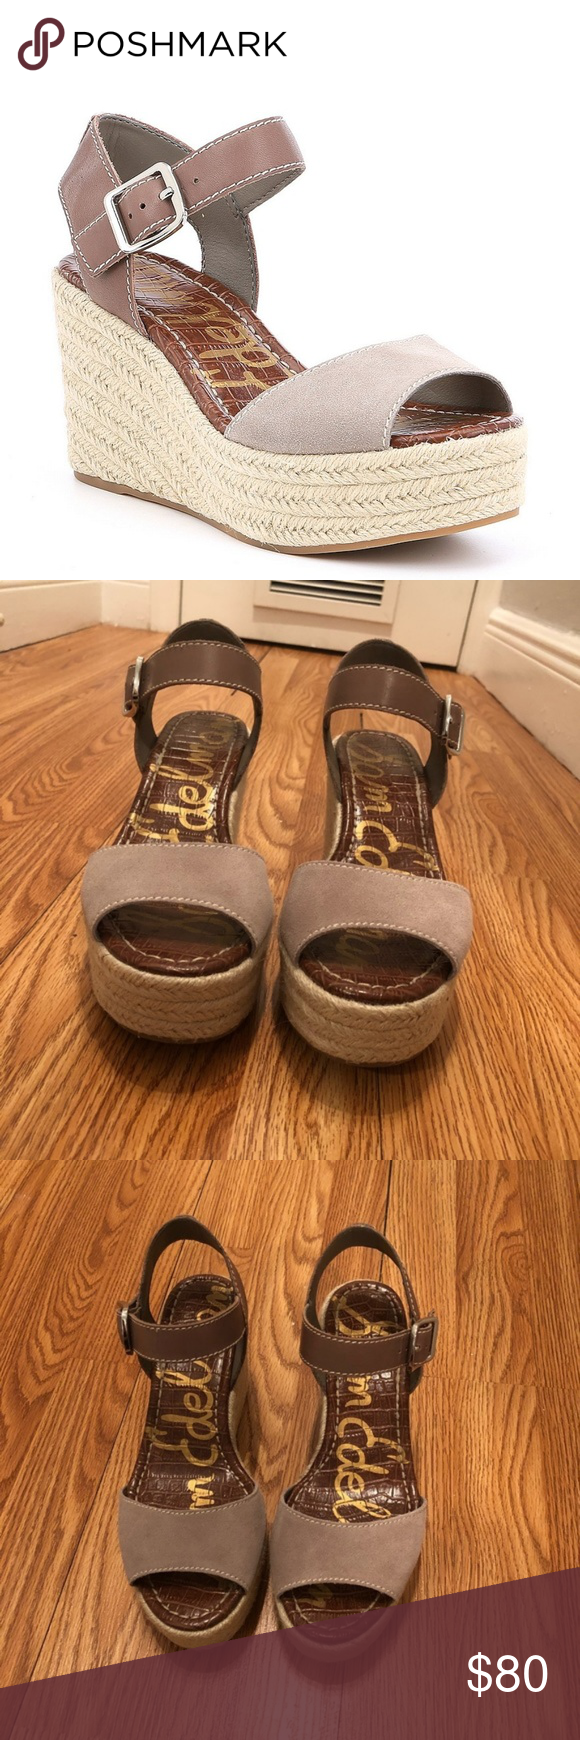 7853904735b1 Sam Edelman Dimitree Wedge Gorgeous taupe espadrille wedge. 3.5 inch heel.  Worn once. Come from non-smoking home. Sam Edelman Shoes Wedges